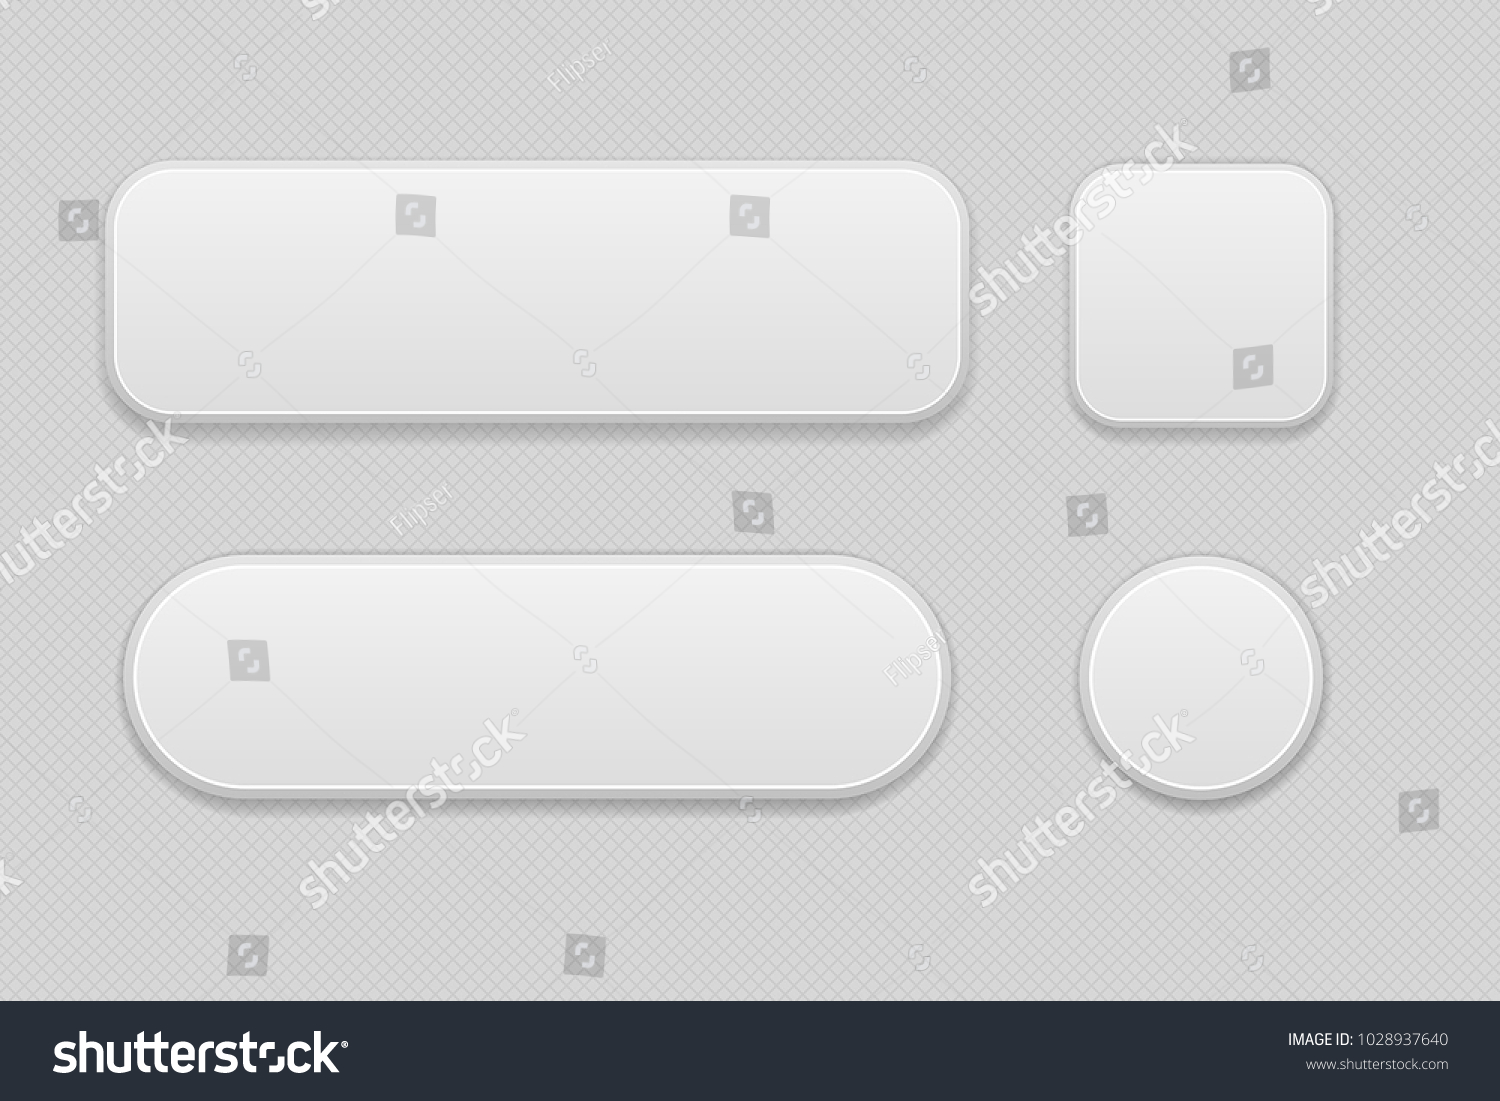 White set of buttons on gray background. Oval, round and square web 3d icons. Vector illustration #1028937640